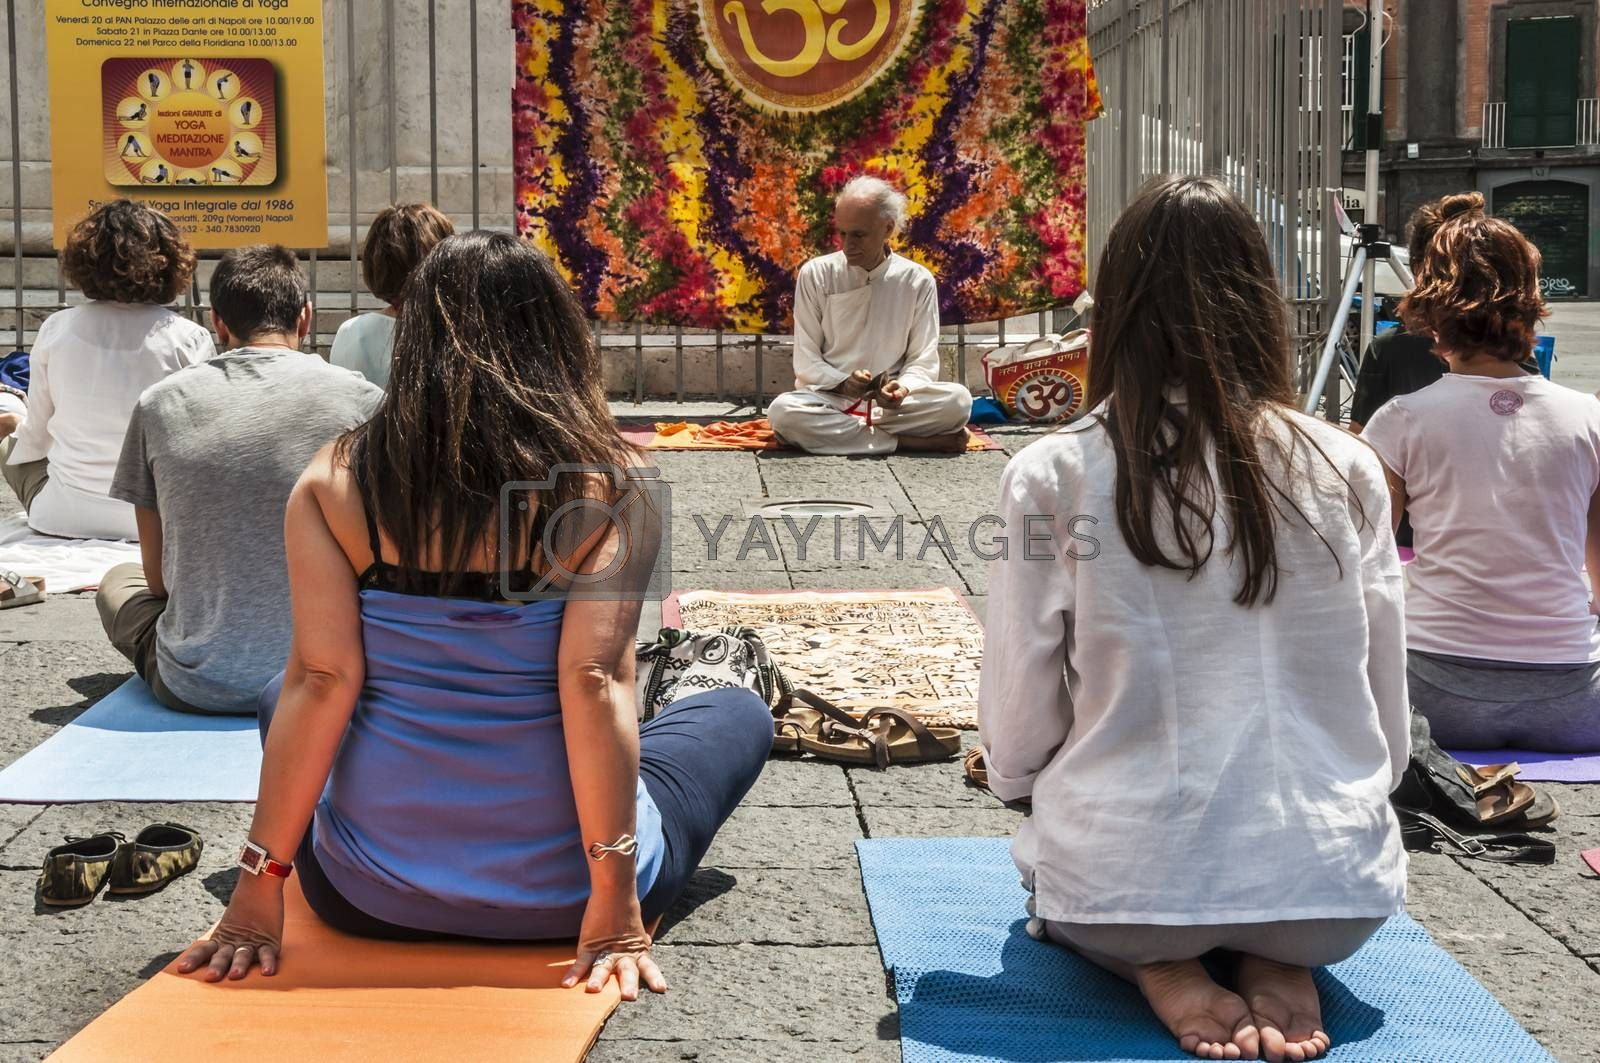 NAPLES - JUNE 21: people have yoga practice with a an expert and old man on the street on June 21, 2014 in Naples, Italy